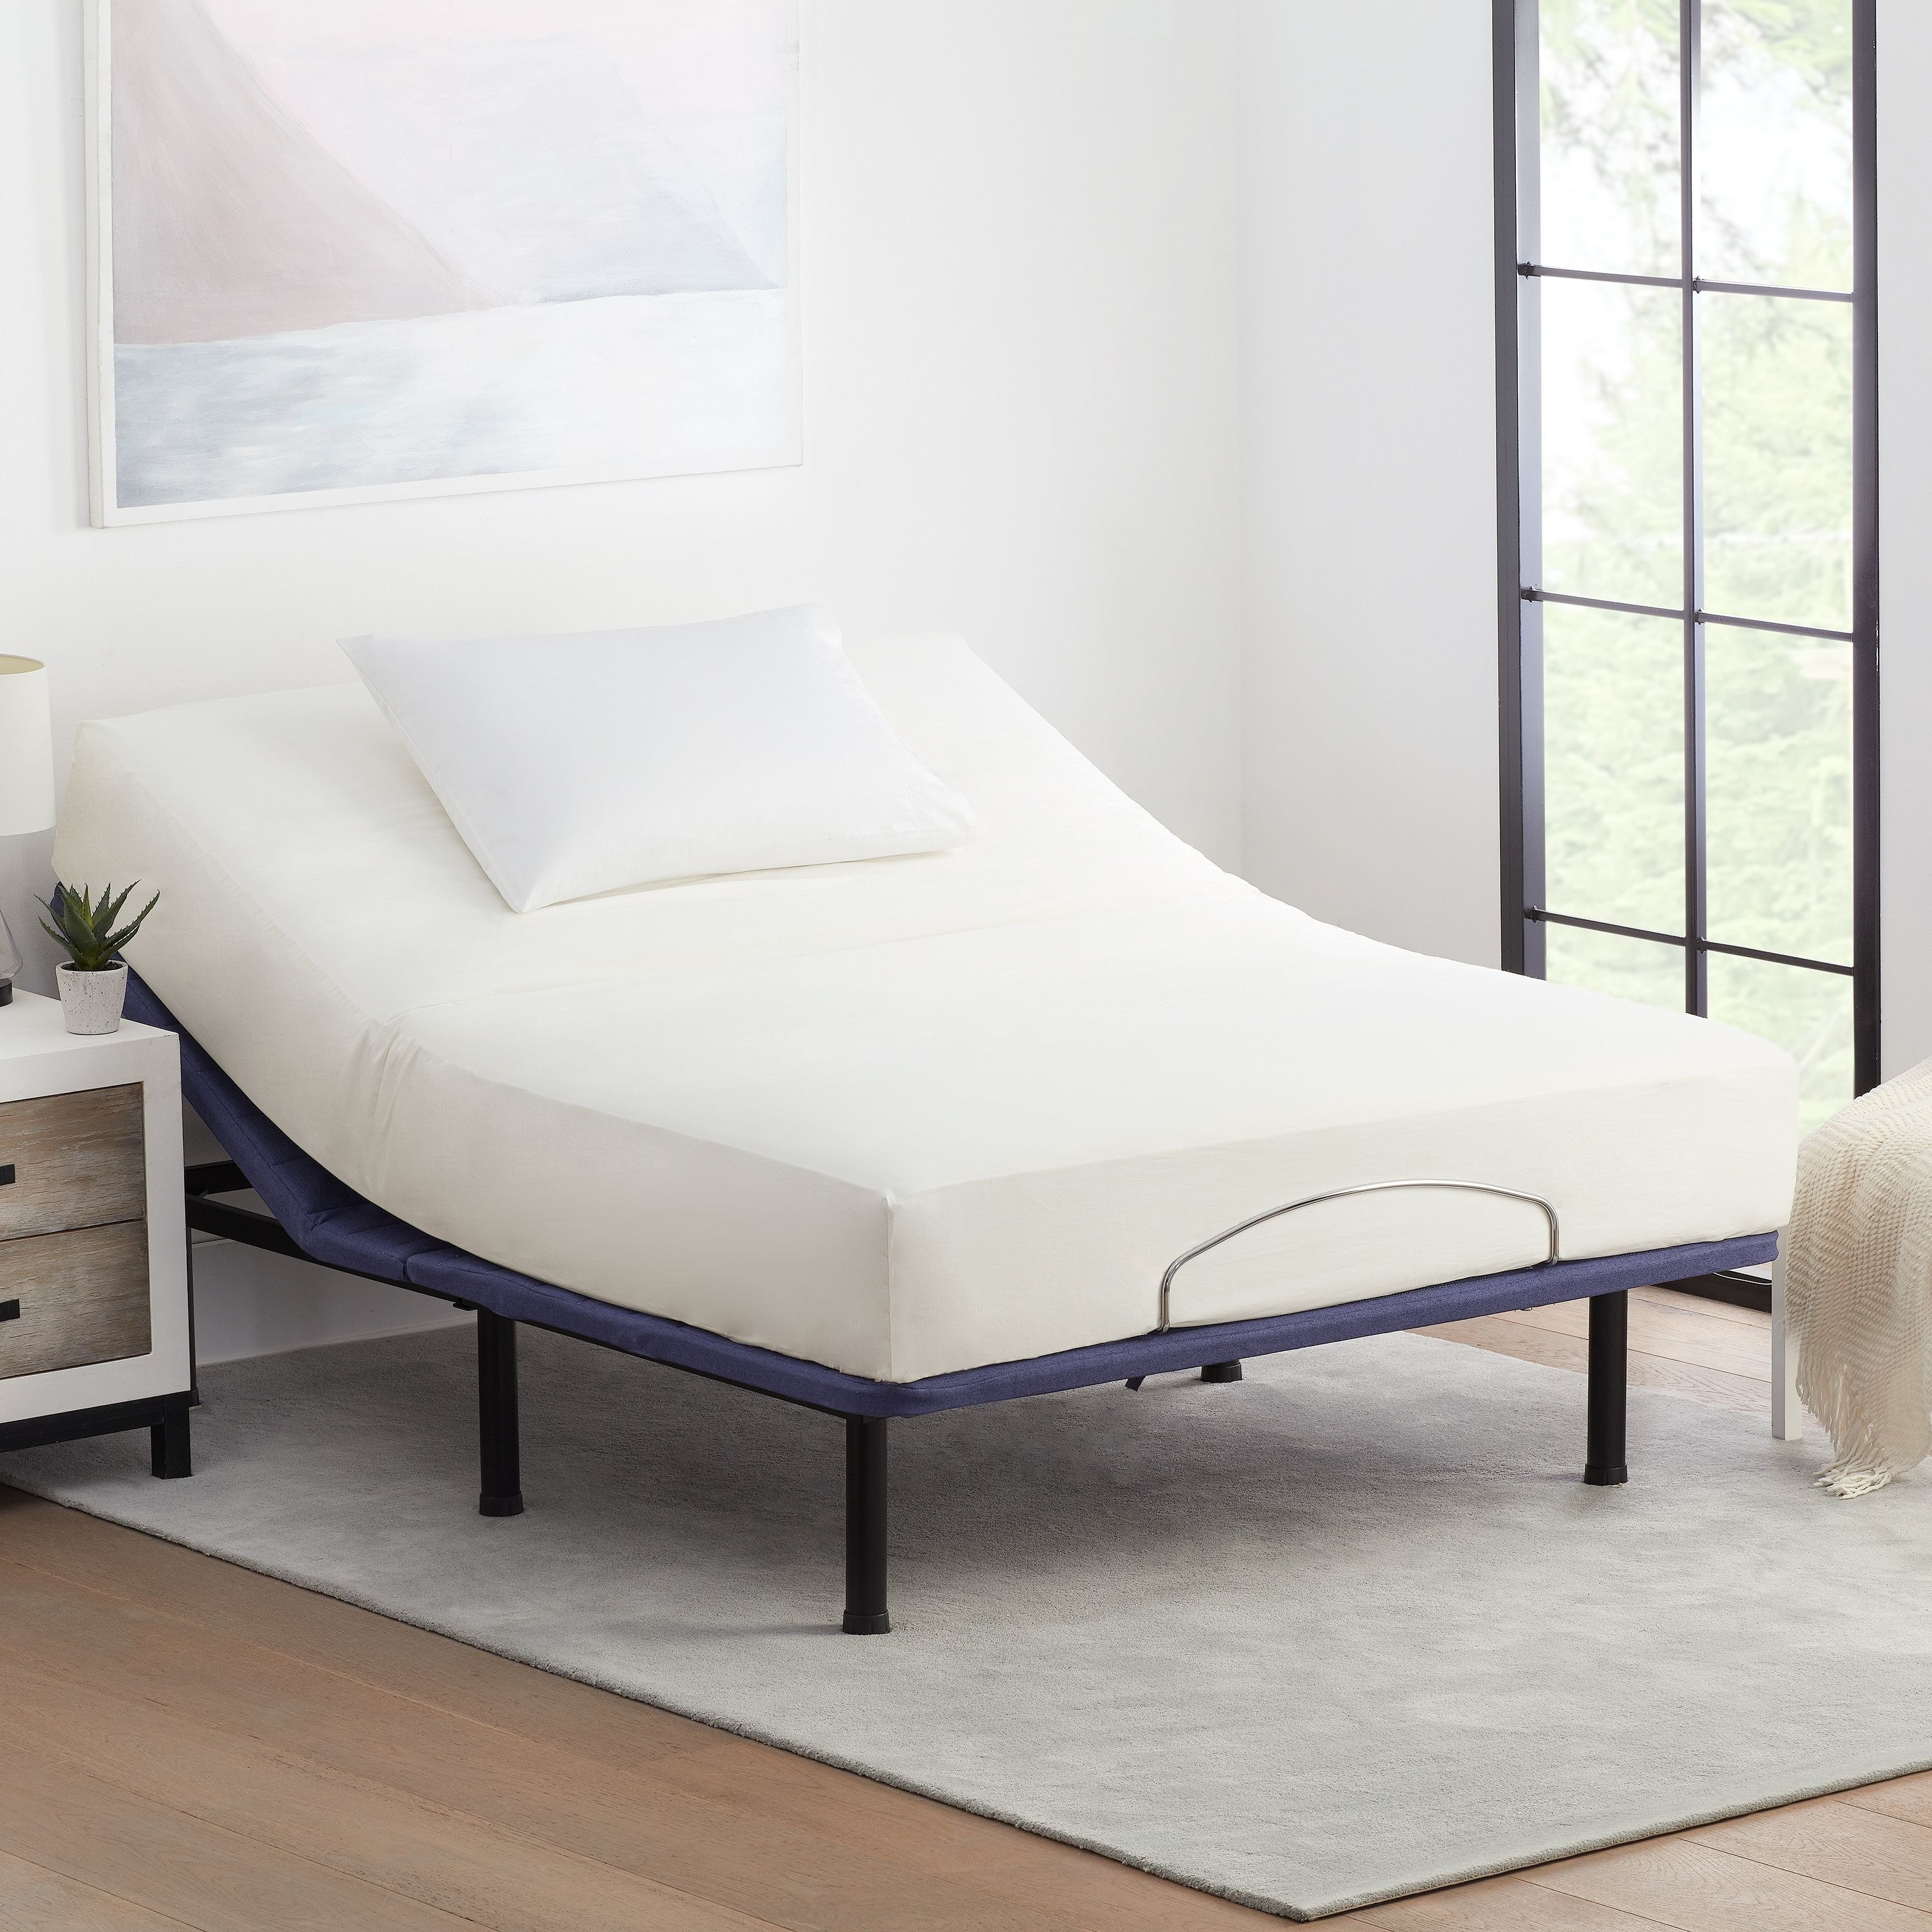 The bed frame with a mattress on it